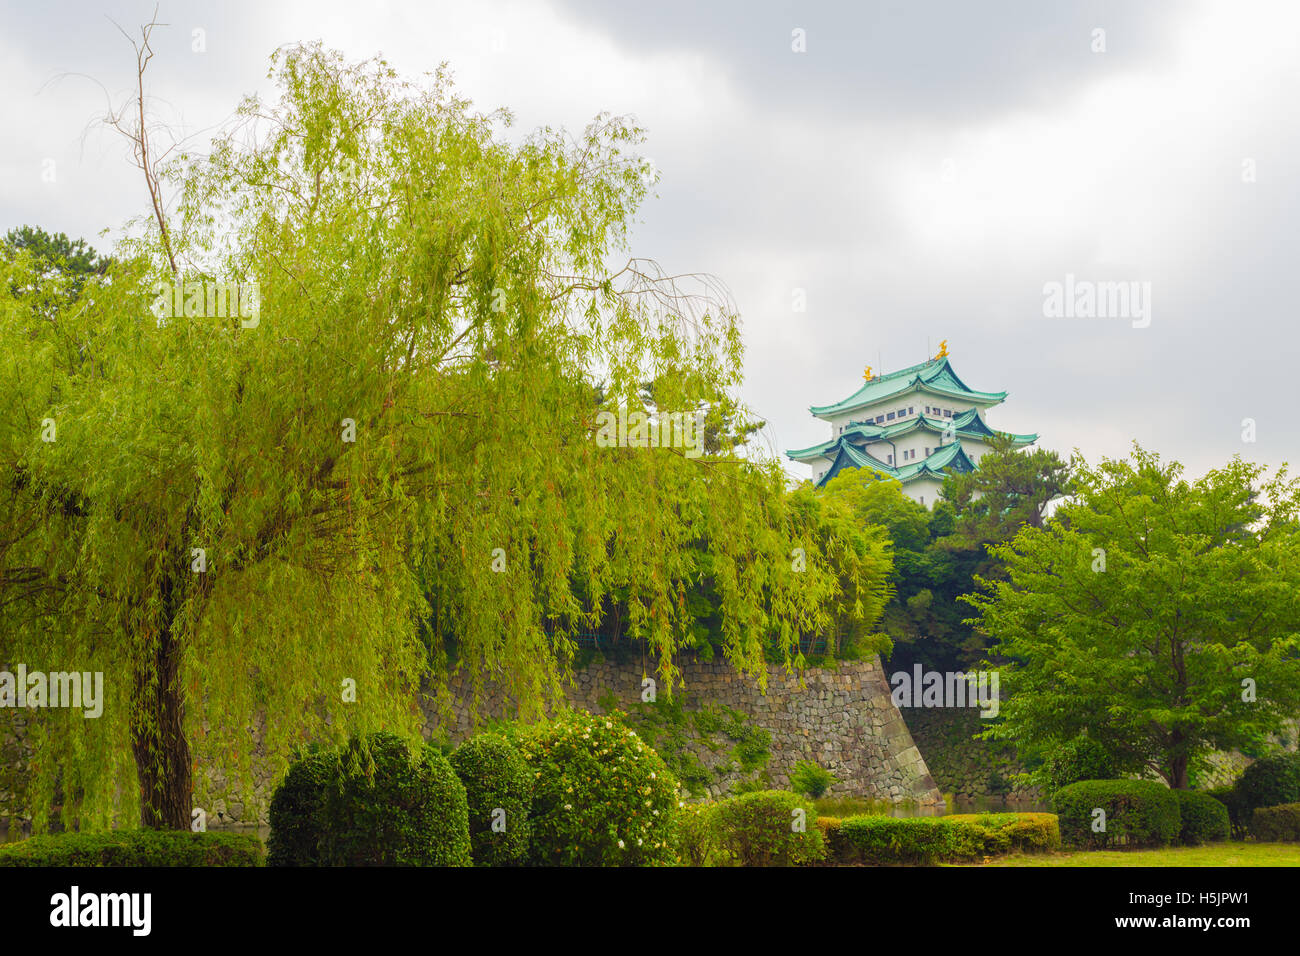 Top of Nagoya Castle visible above treeline and rampart walls on overcast day in Nagoya, Japan - Stock Image